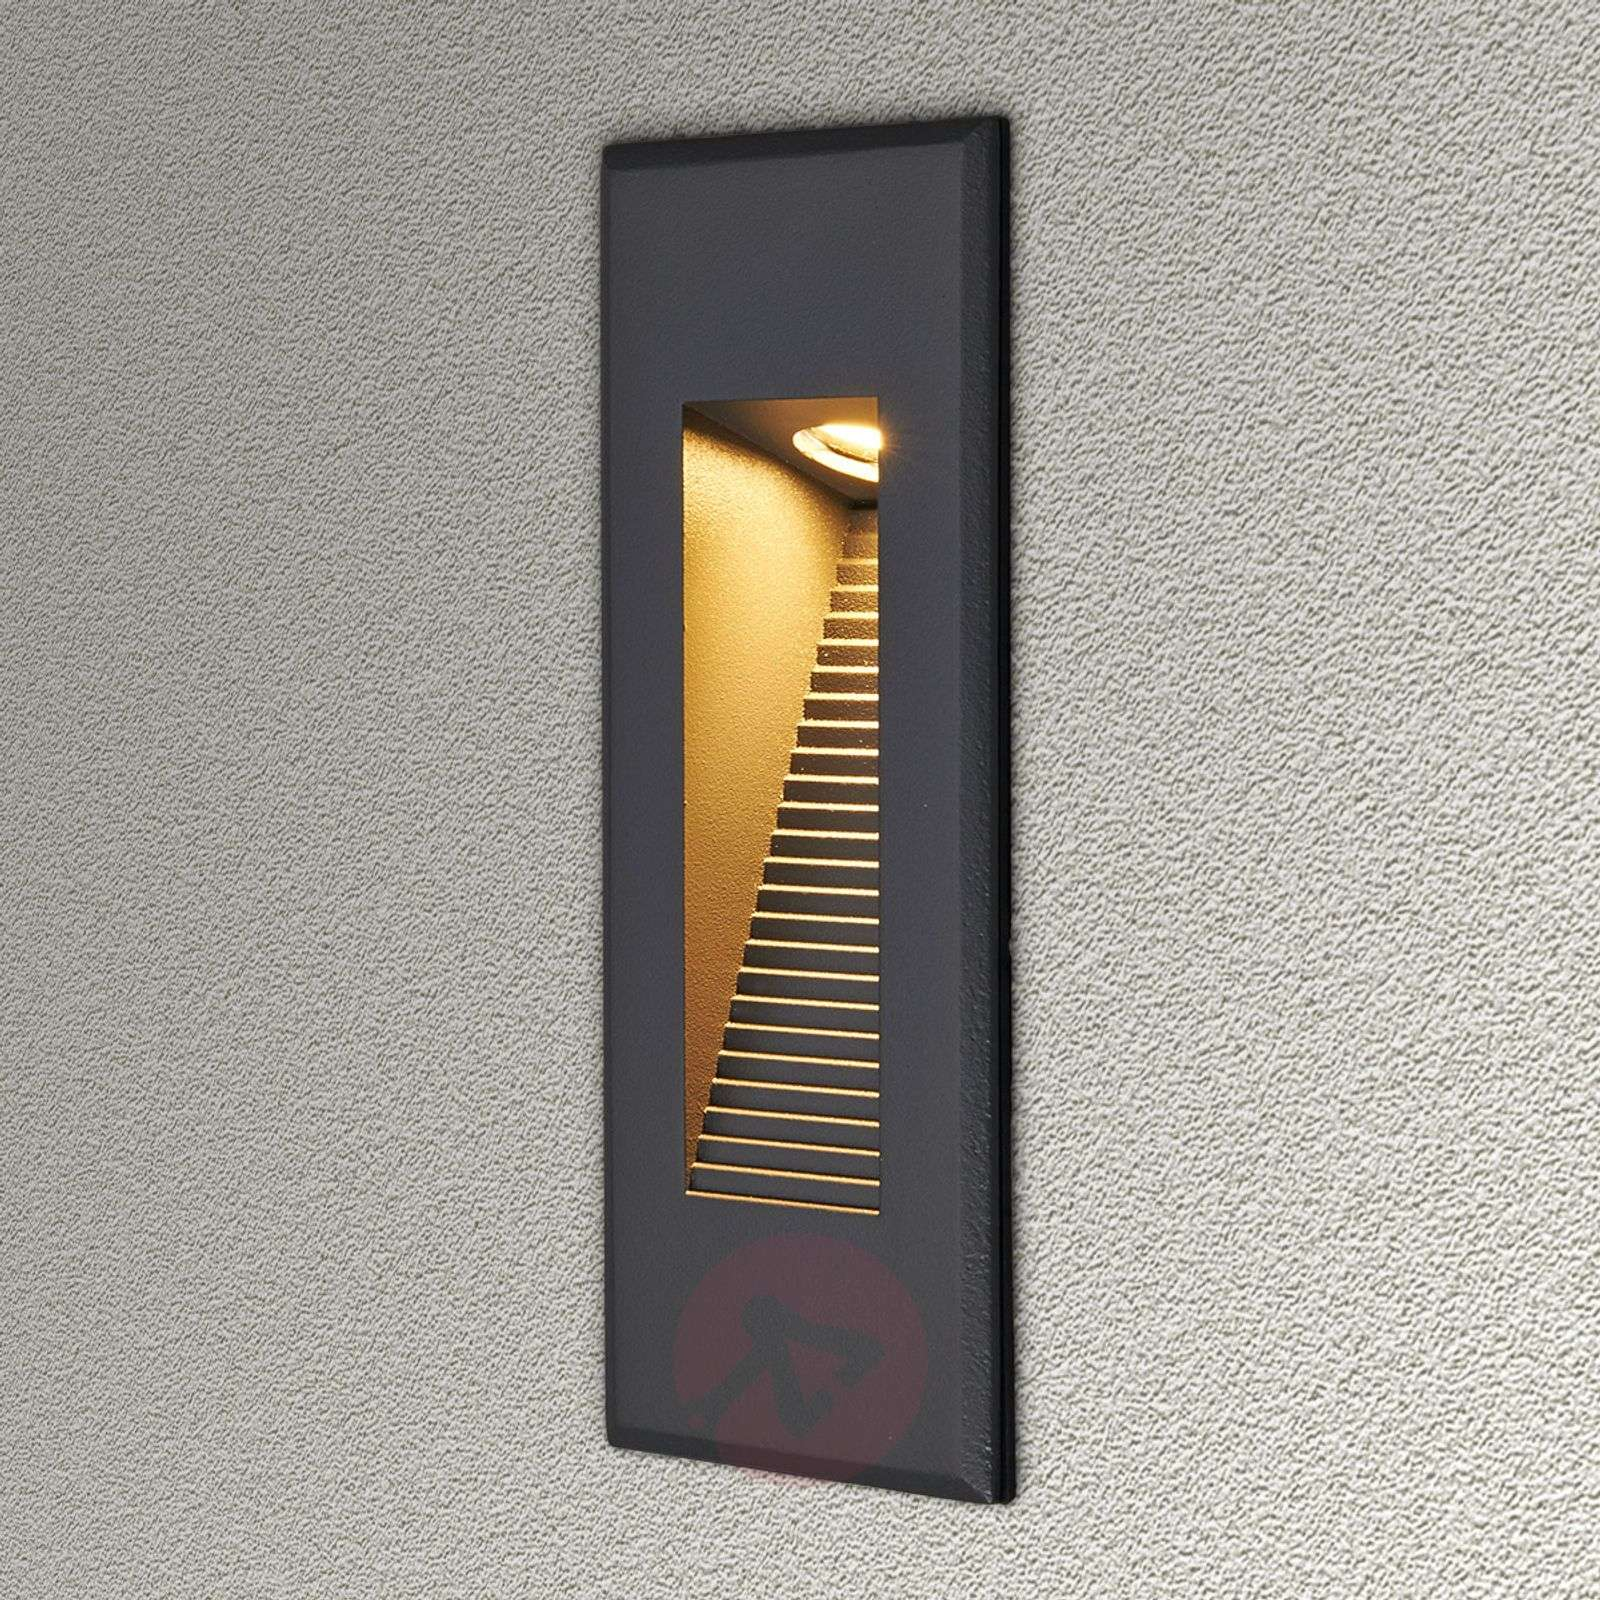 Indirect shining LED installed wall light Nuno-9616037-01